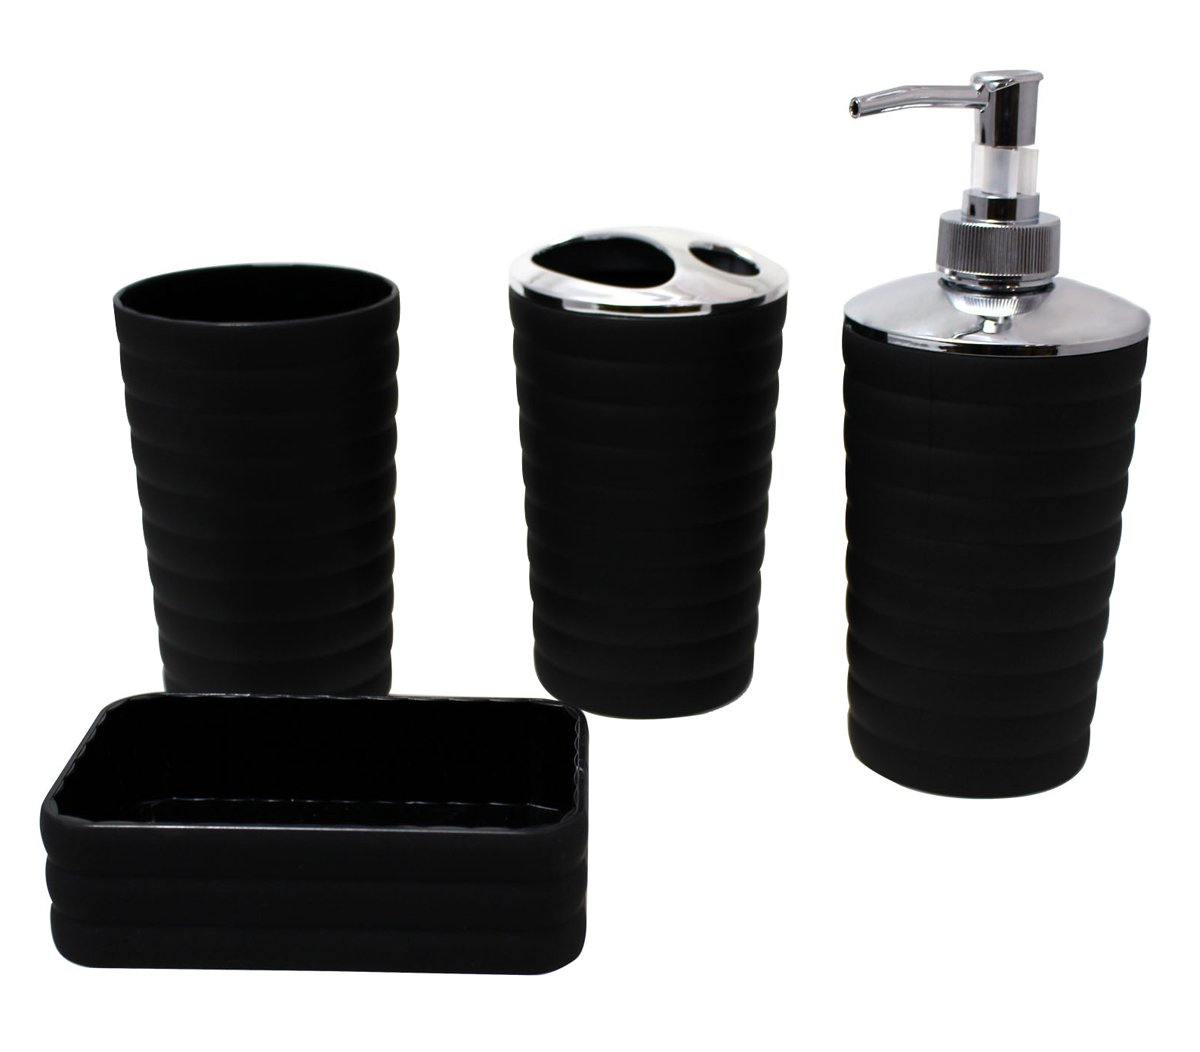 JustNile Minimalist 4-Piece Durable Plastic Black Bathroom Accessory Set, Soap Dish/Soap Dispenser/Tumbler/Toothbrush… - Four pieces set includes soap dispenser, soap dish, toothbrush holder and cup Simple, stylish, elegant and it's easy to clean Made of Plastic With Rubber finished - bathroom-accessory-sets, bathroom-accessories, bathroom - 51yBK8ZvfSL -